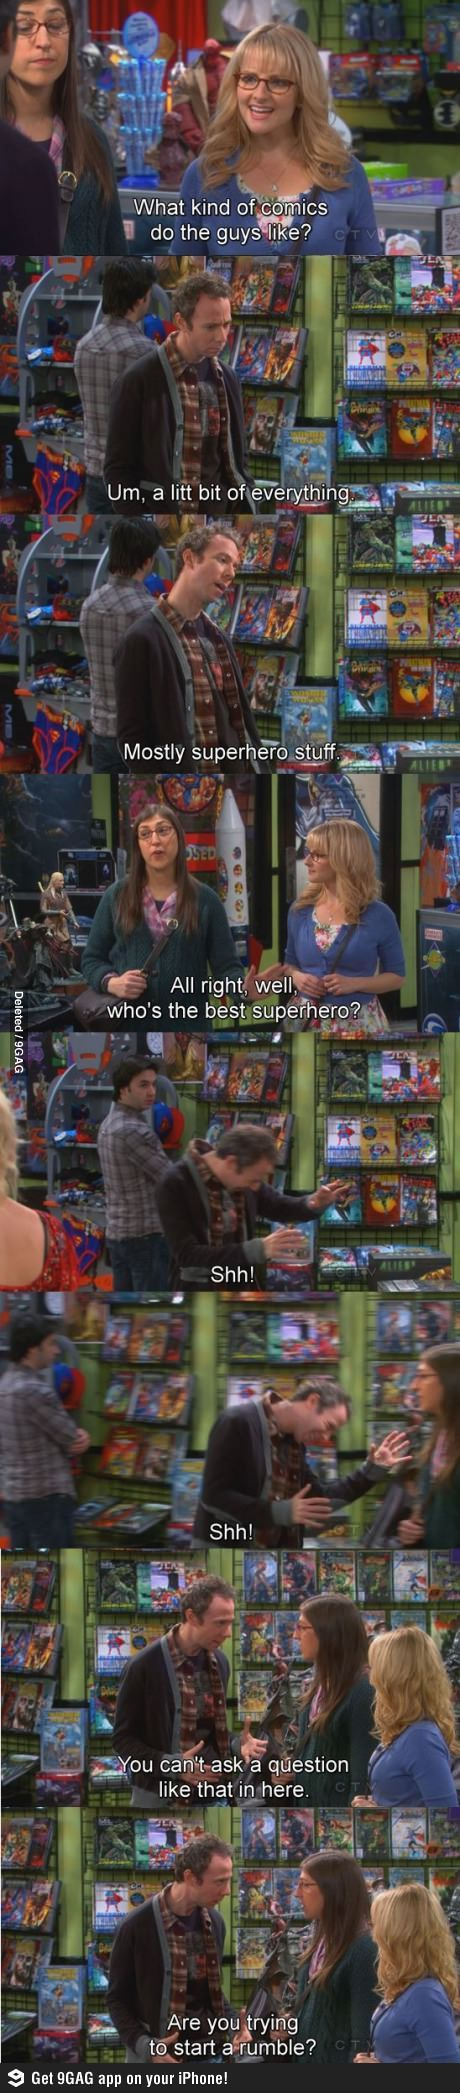 """""""Are you trying to start a rumble?!"""" Stewart, The Big Bang Theory"""